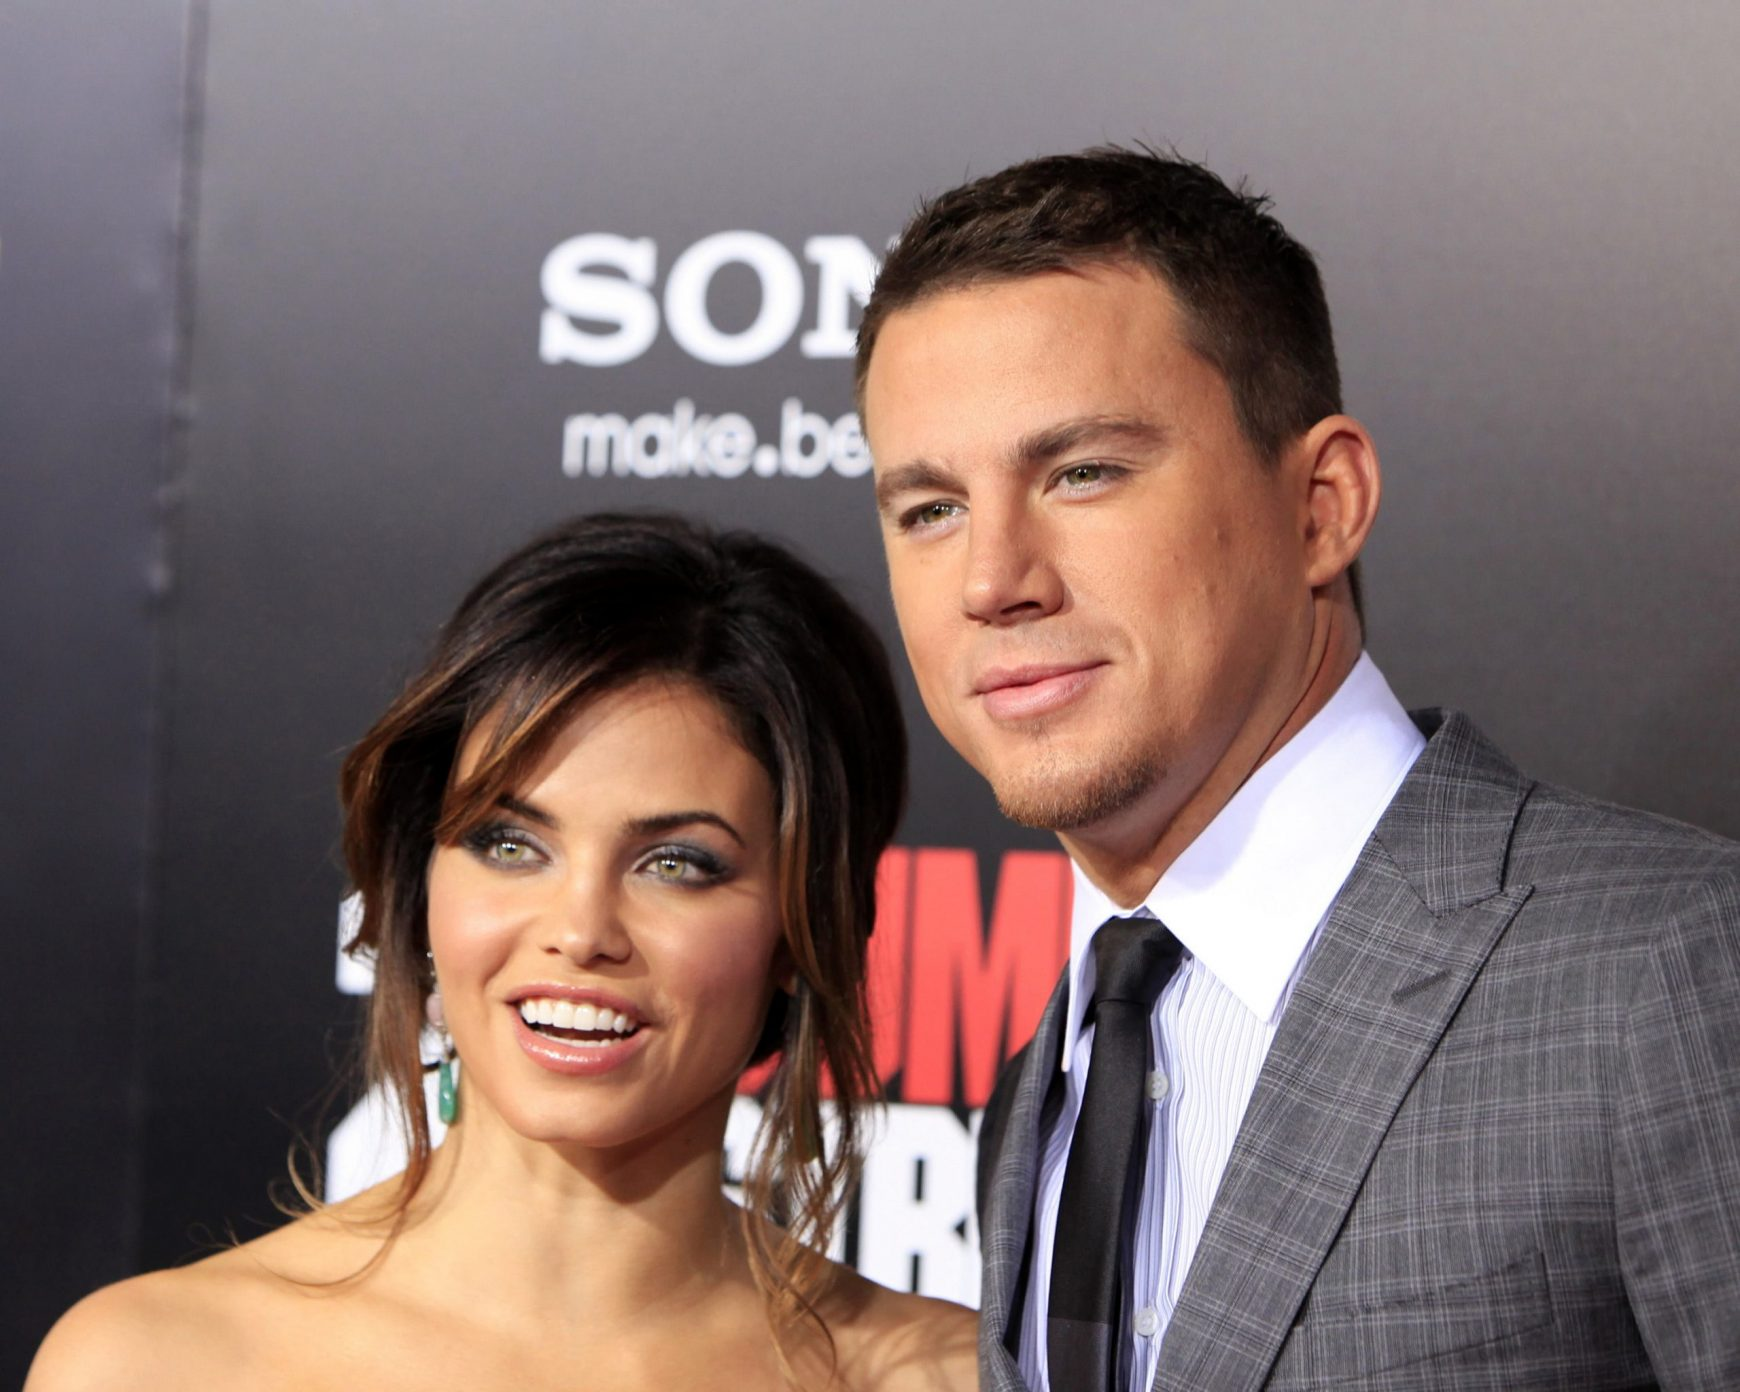 Channing Tatum's Split with Jenna Dewan After Family and Career Struggles